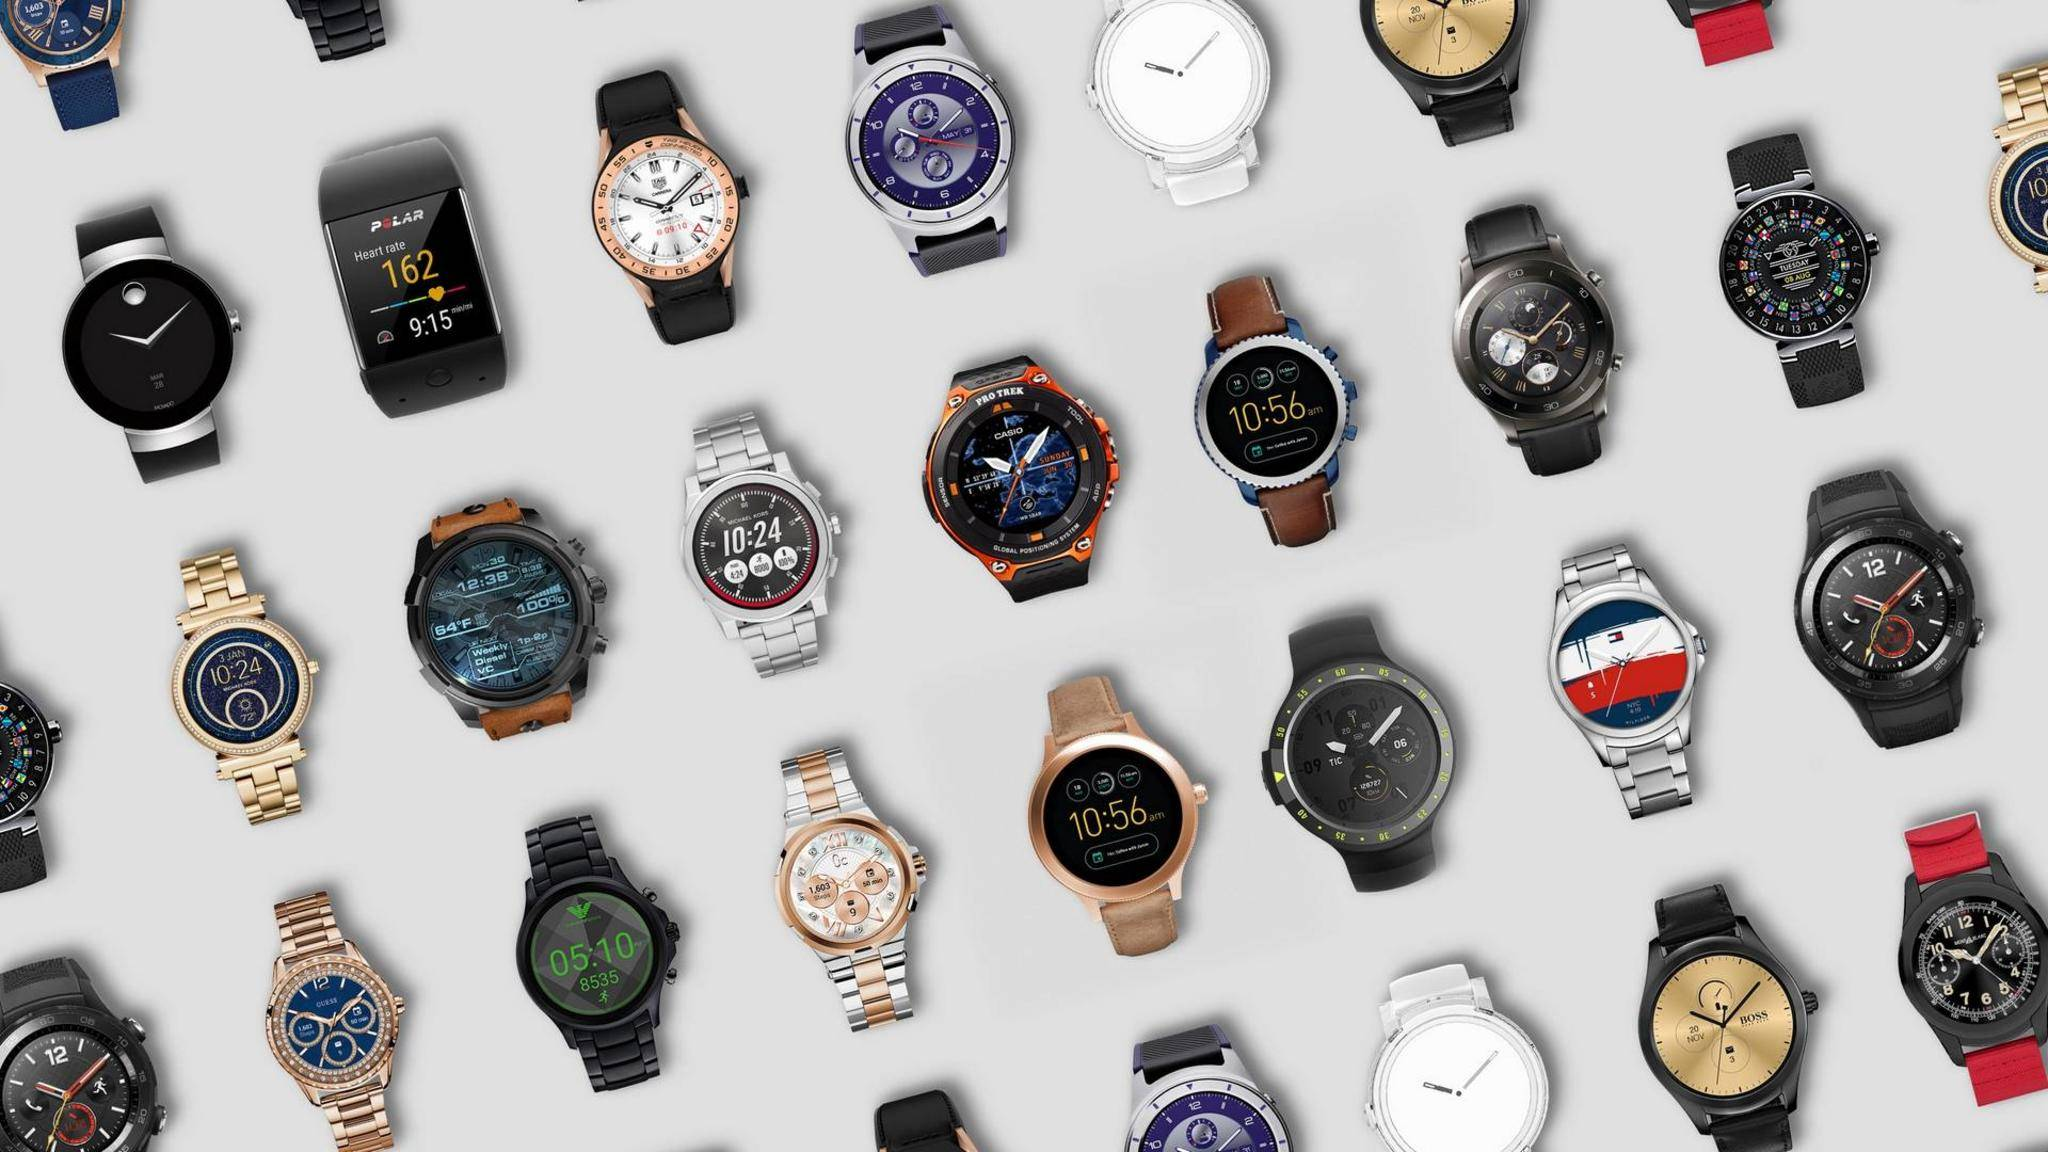 Android Wear heißt jetzt Wear OS.